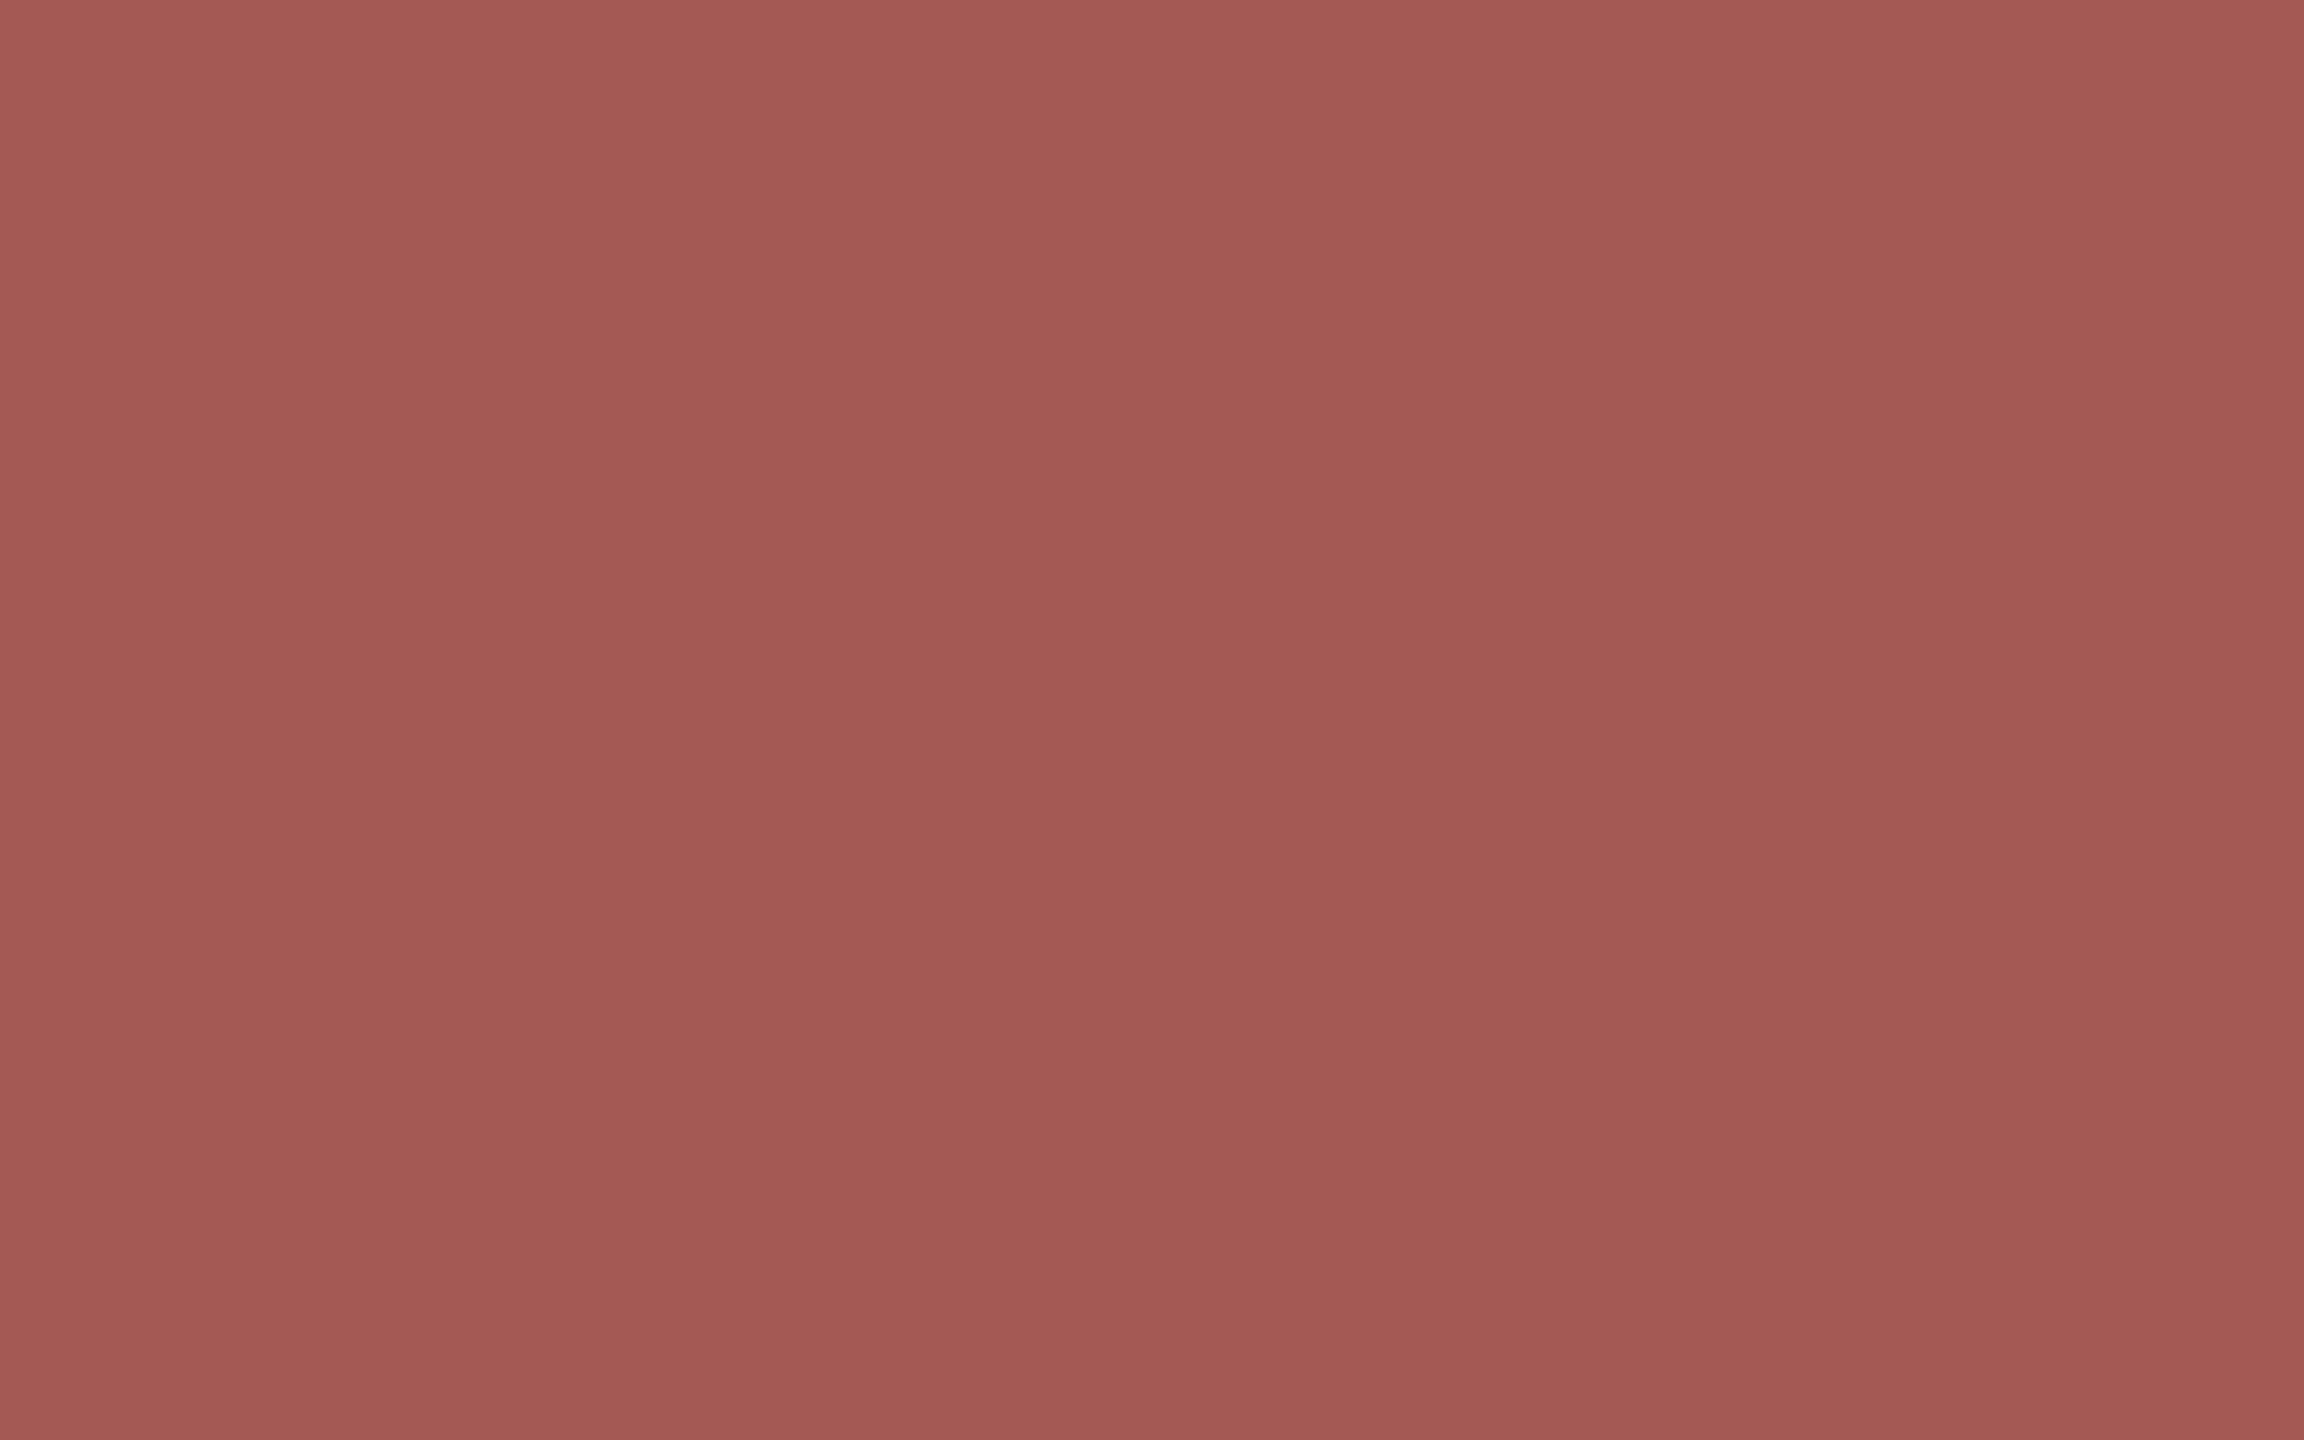 2304x1440 Redwood Solid Color Background